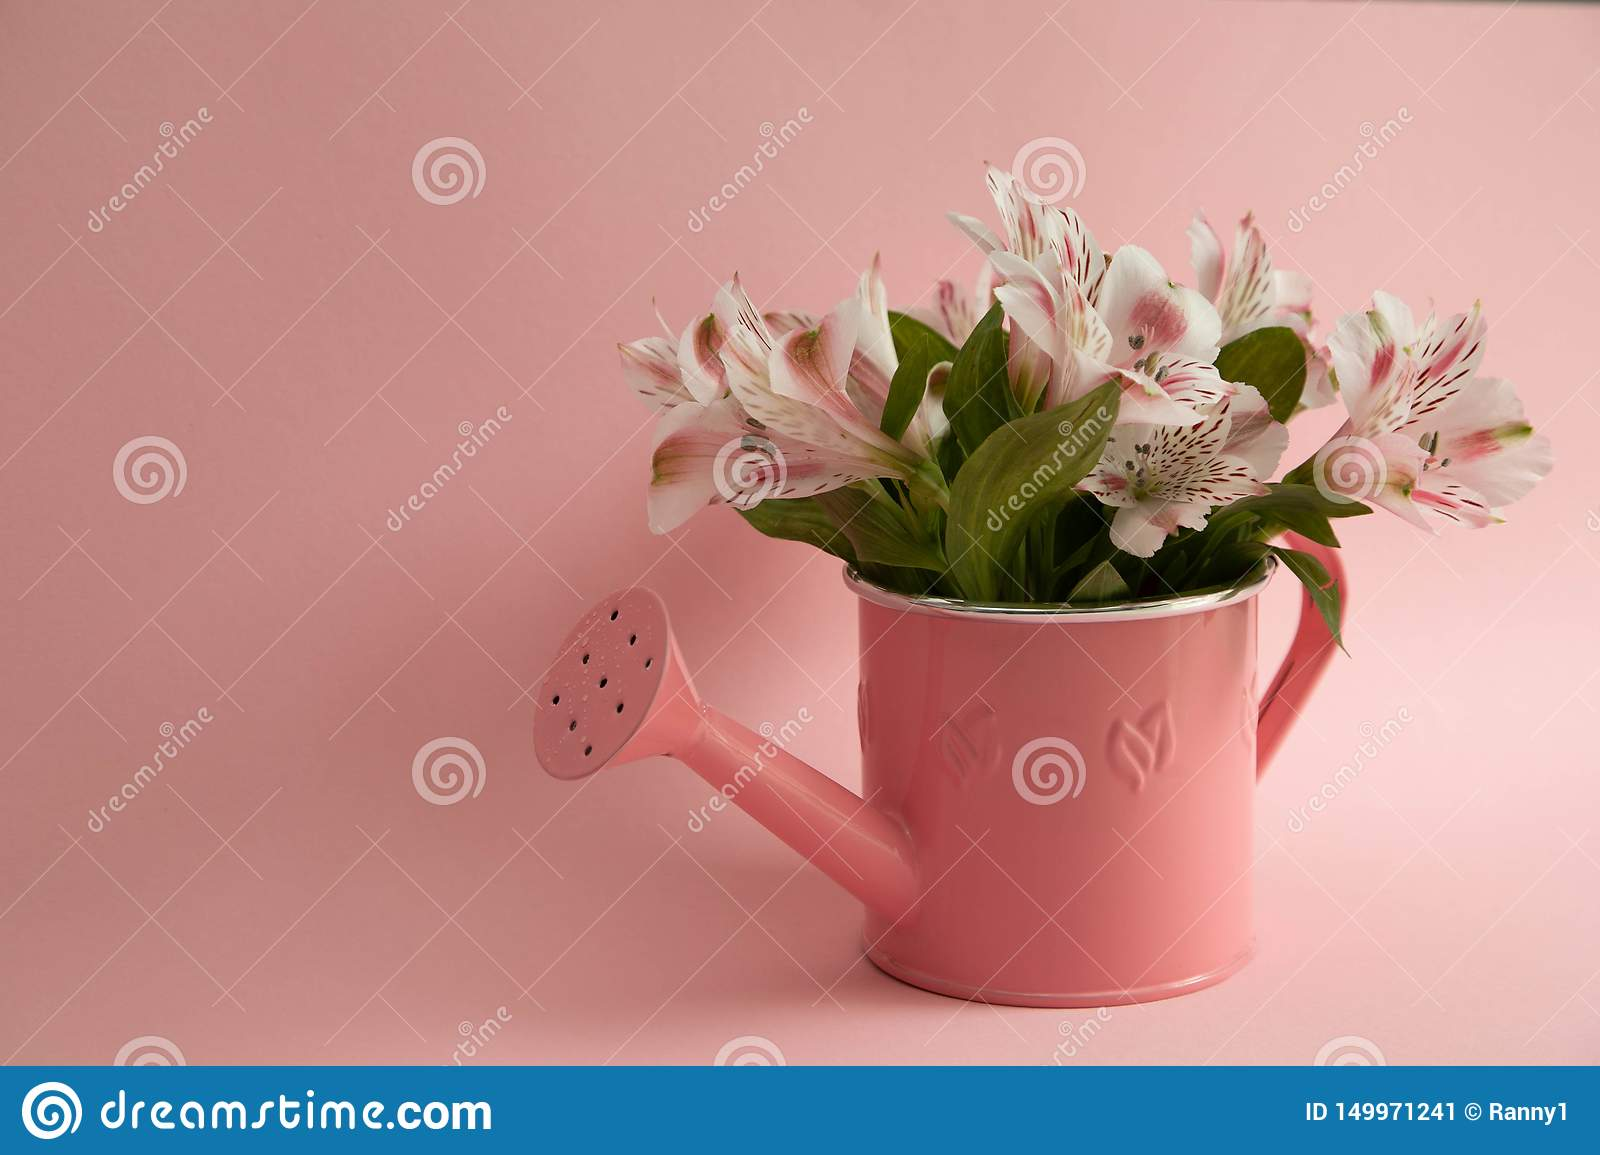 Empty pink watering can and three crimson gerbera flowers lying diagonally. Three red flowers and an empty watering can on a